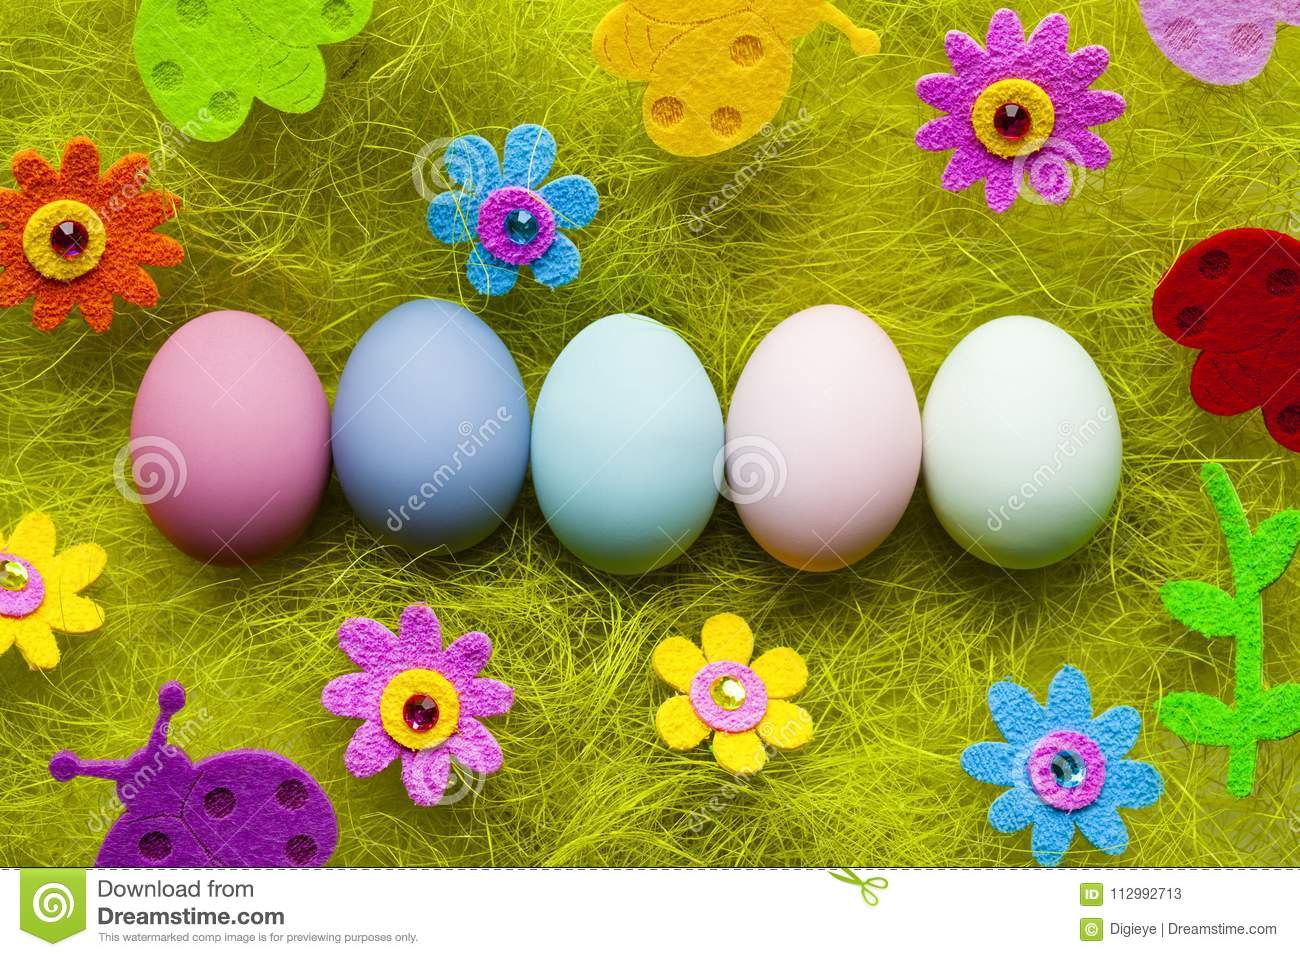 Easter background - painted eggs and colorful decorations